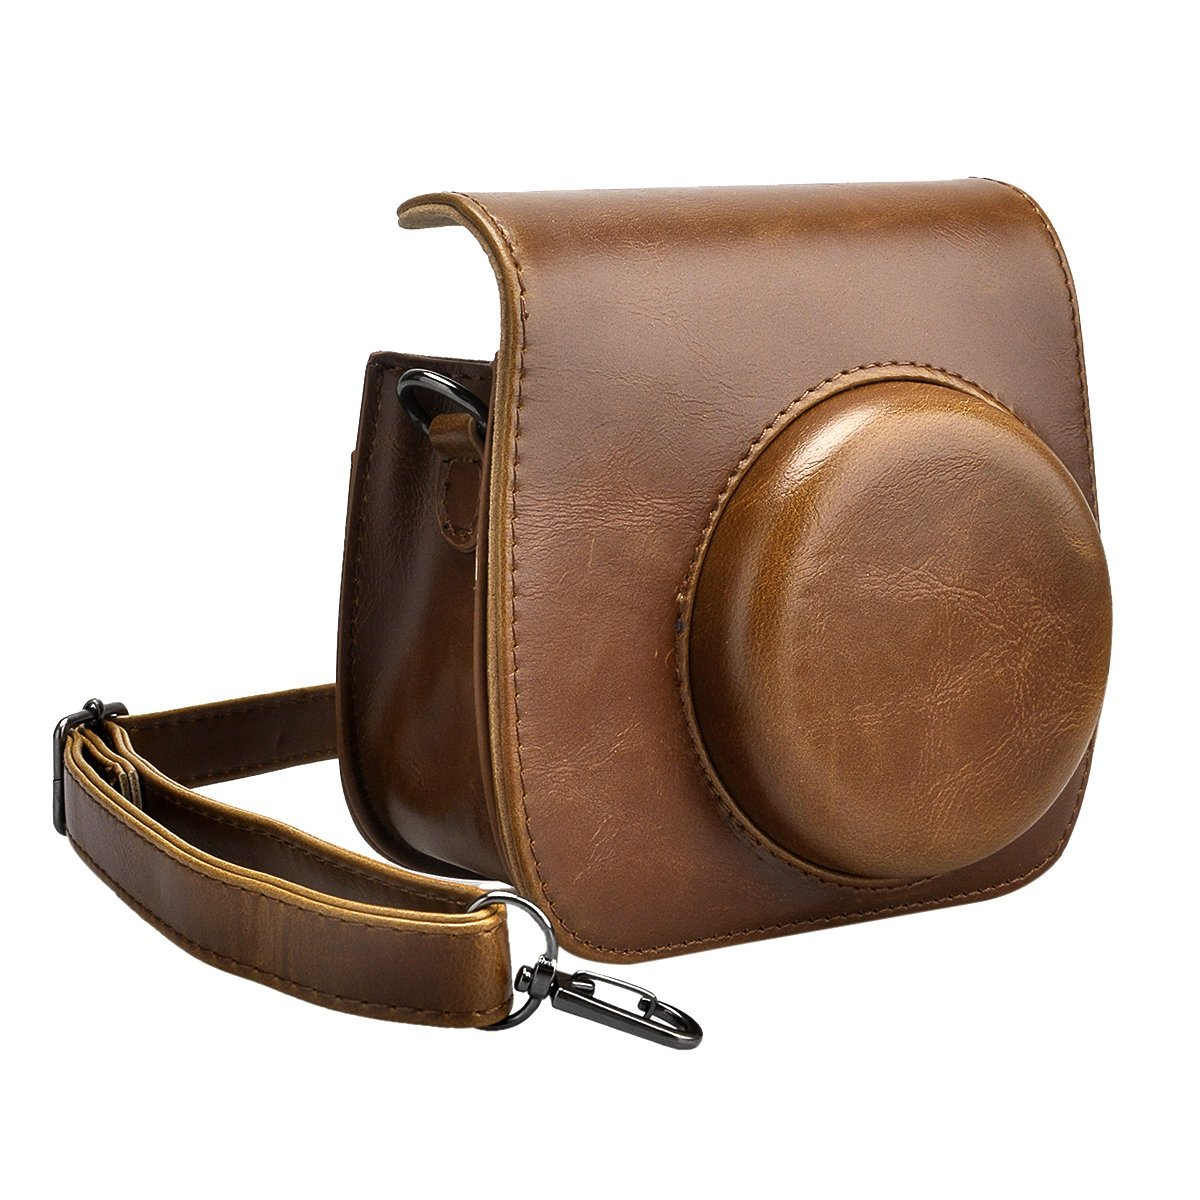 SKmoon PU Leather Instax Camera Accessories Compact Case Vintage Shoulder Bag with Pocket for Fujifilm Instax Mini 8 Instant Film Camera (Brown)